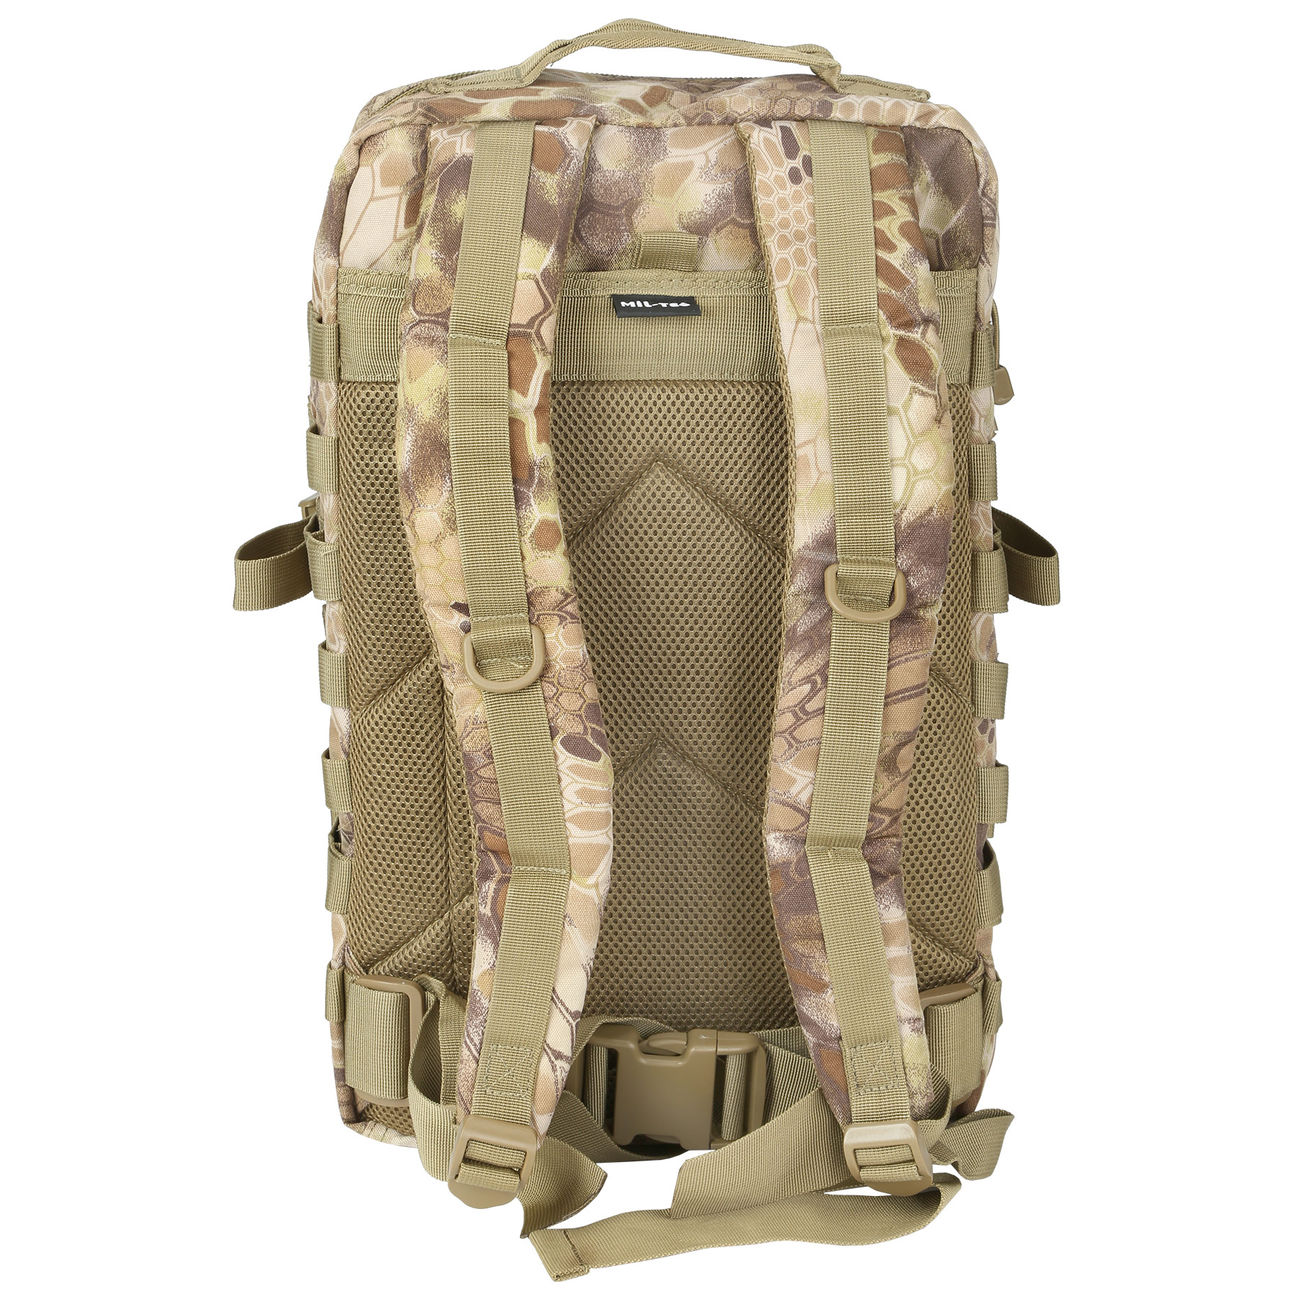 Mil-Tec Rucksack US Assault Pack II 40 Liter mandra tan 7